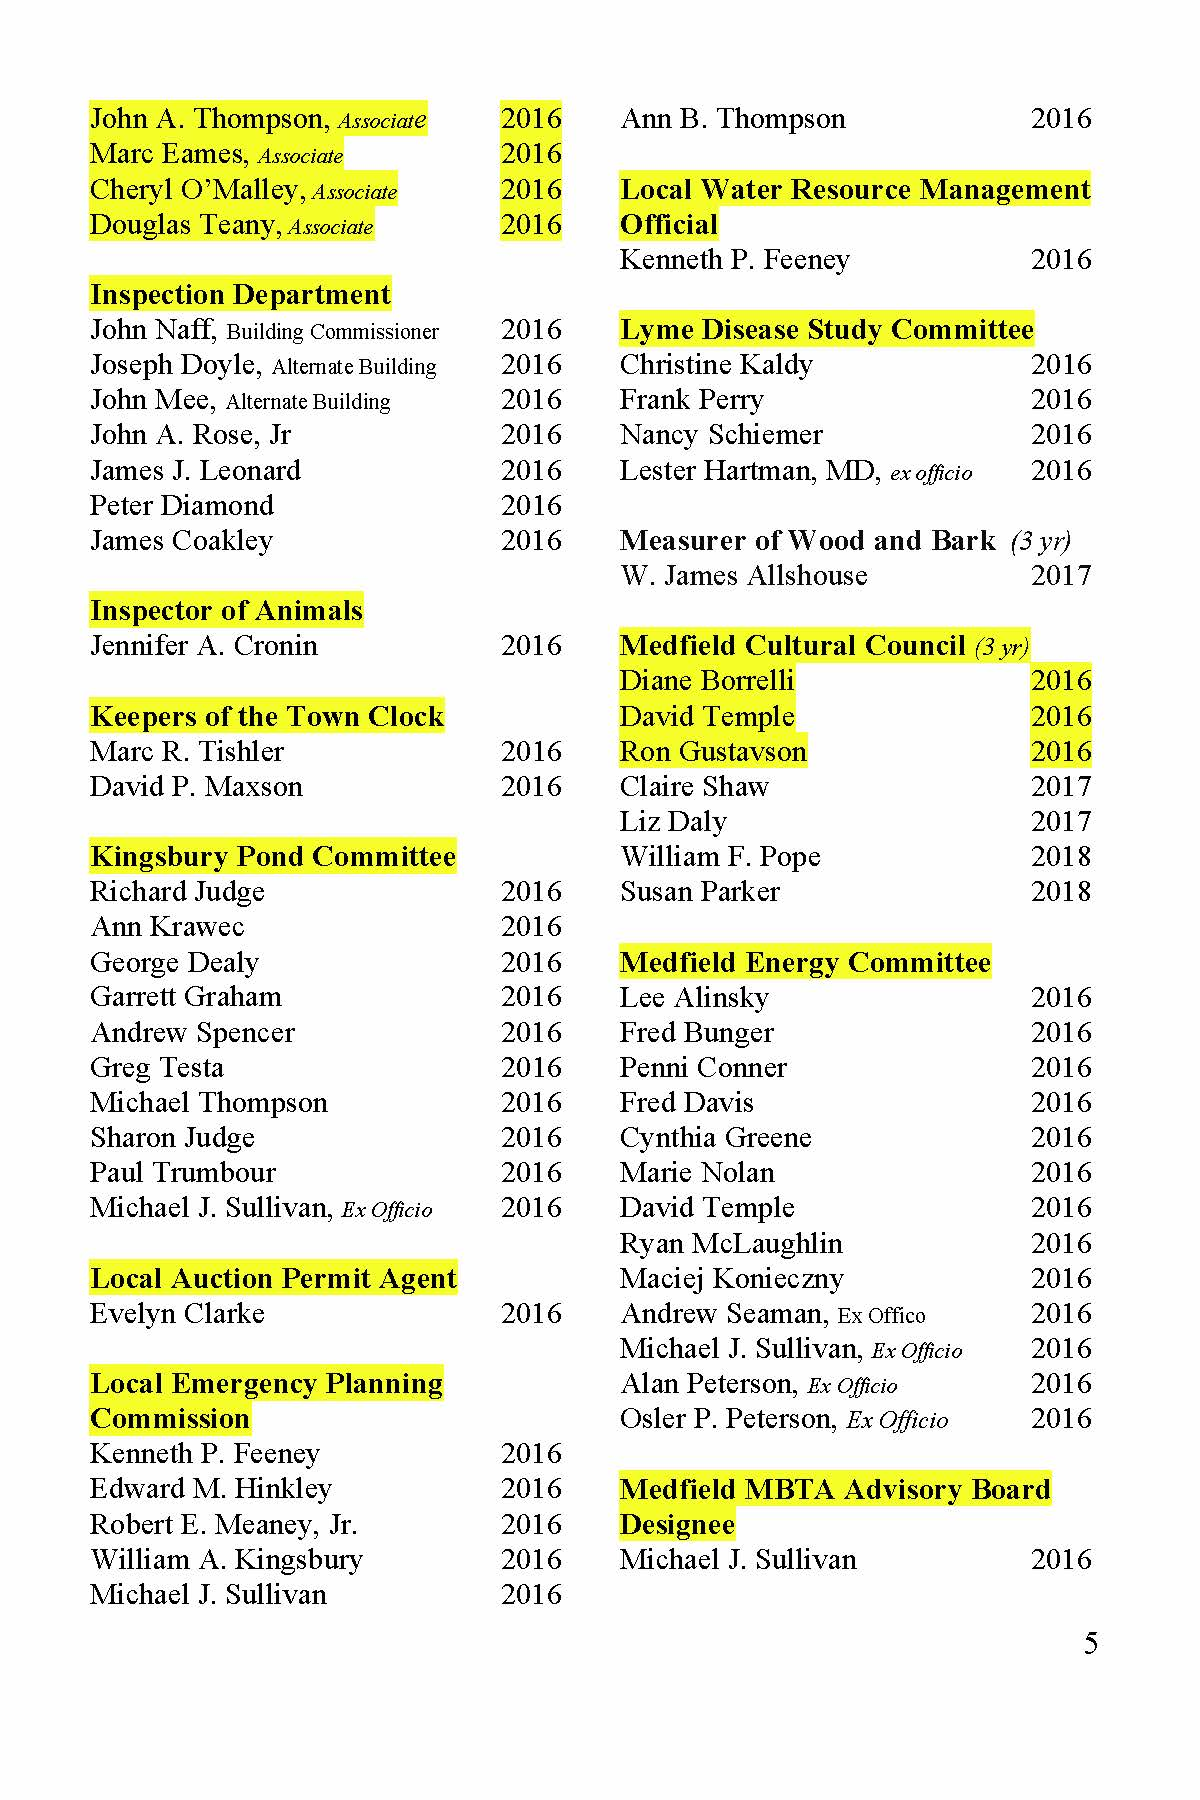 20160525-Elected and Appointed for Annual Report_Page_5